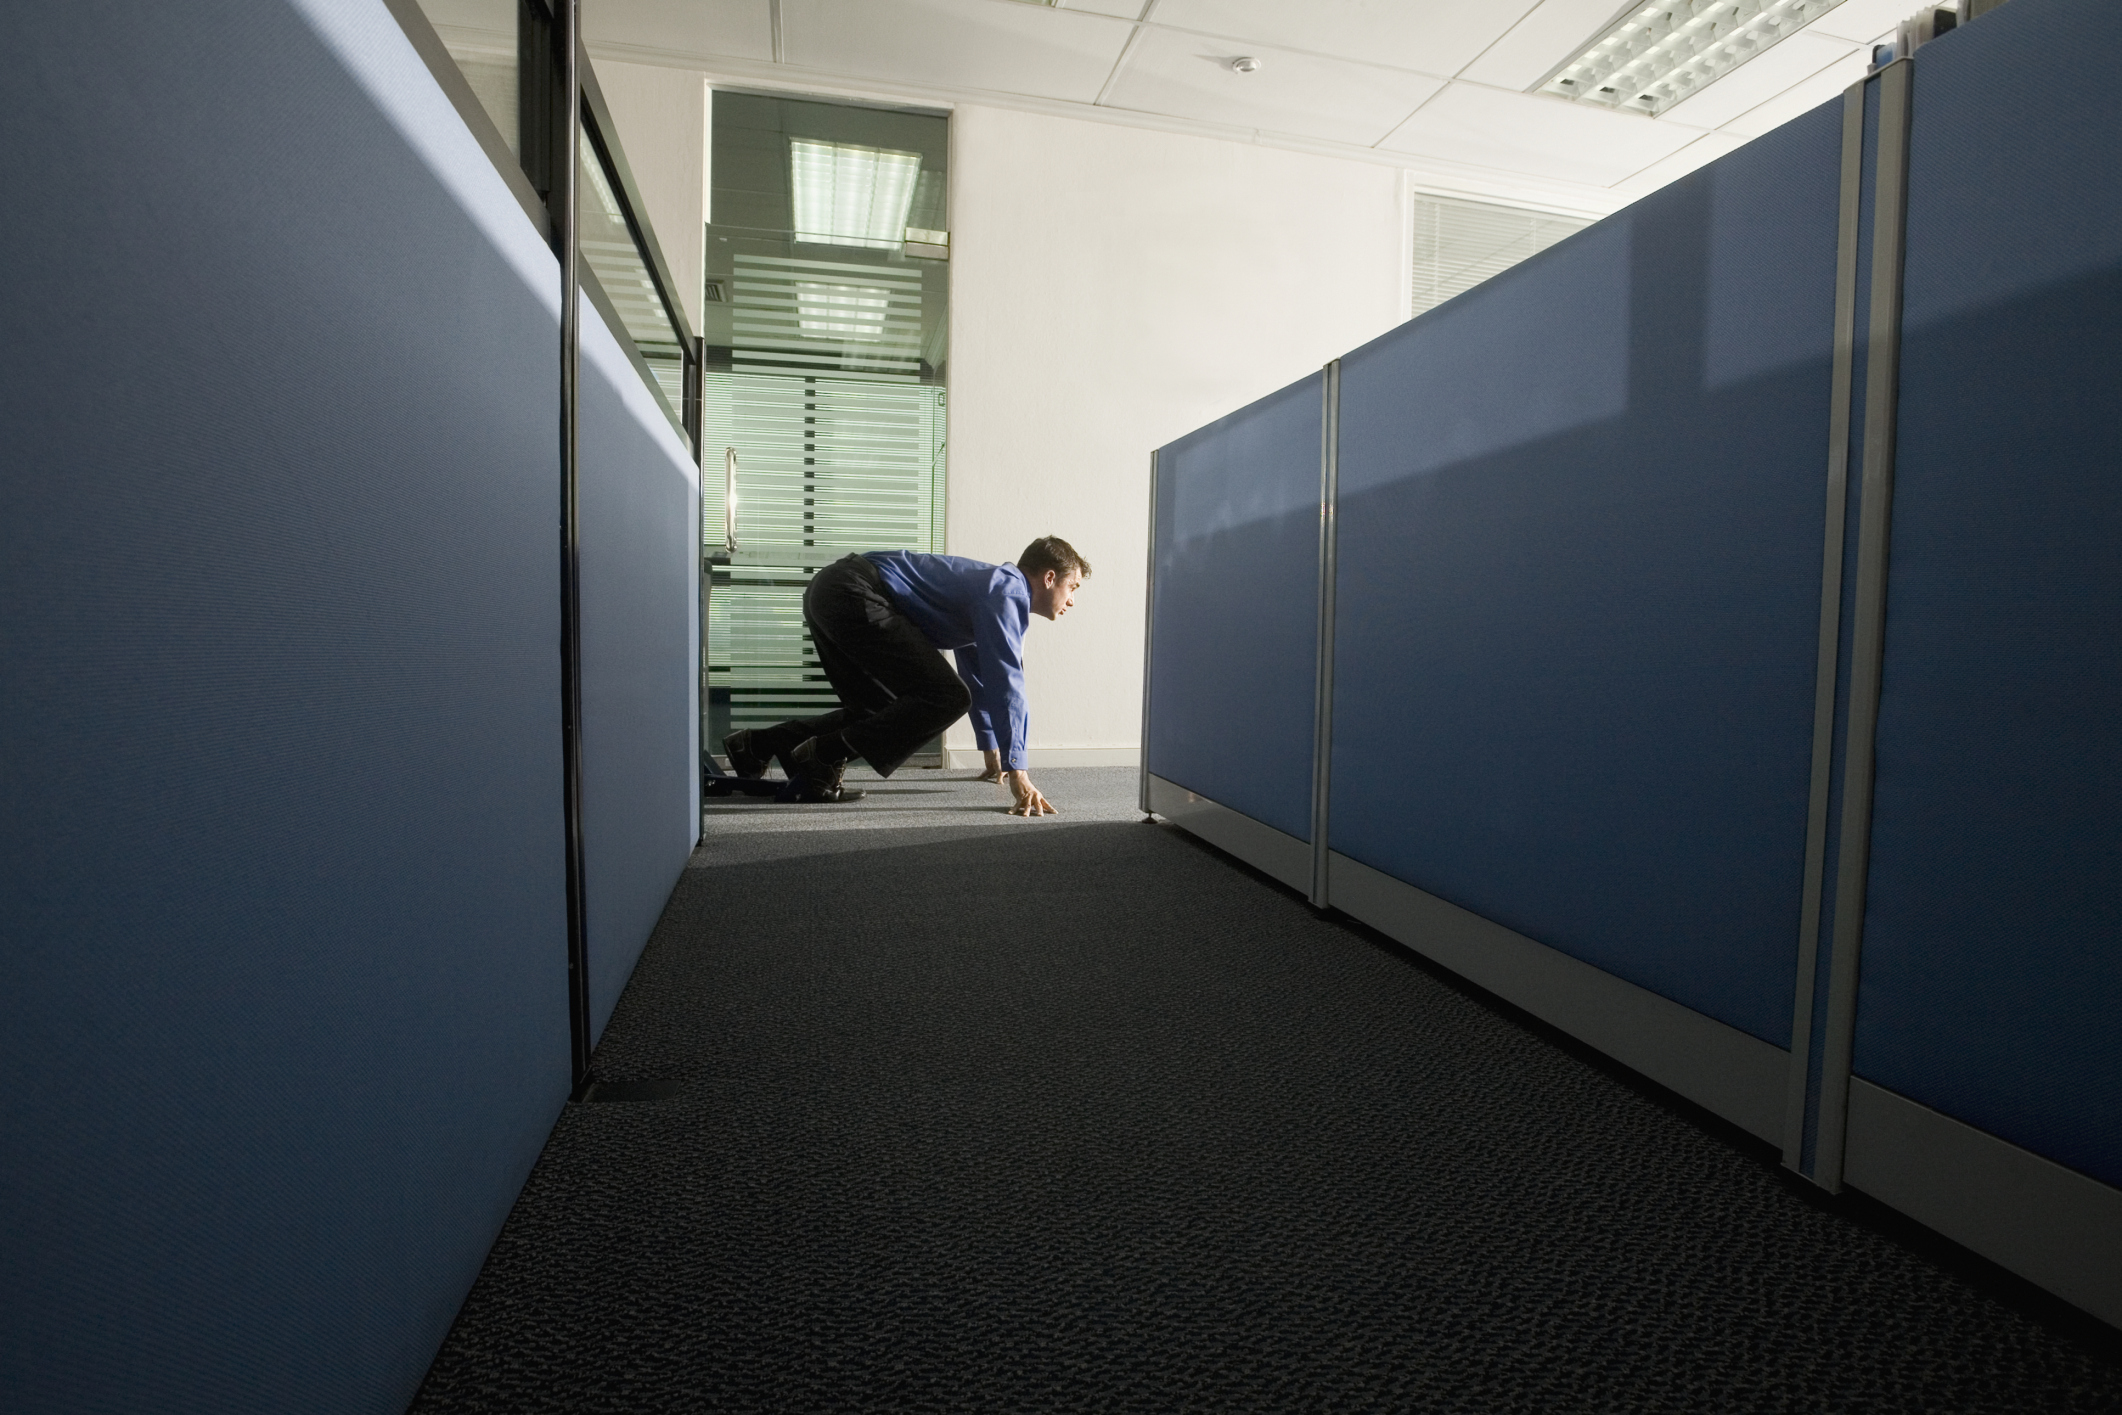 Feel the need to sneak in or out of the office? You might not be independent.